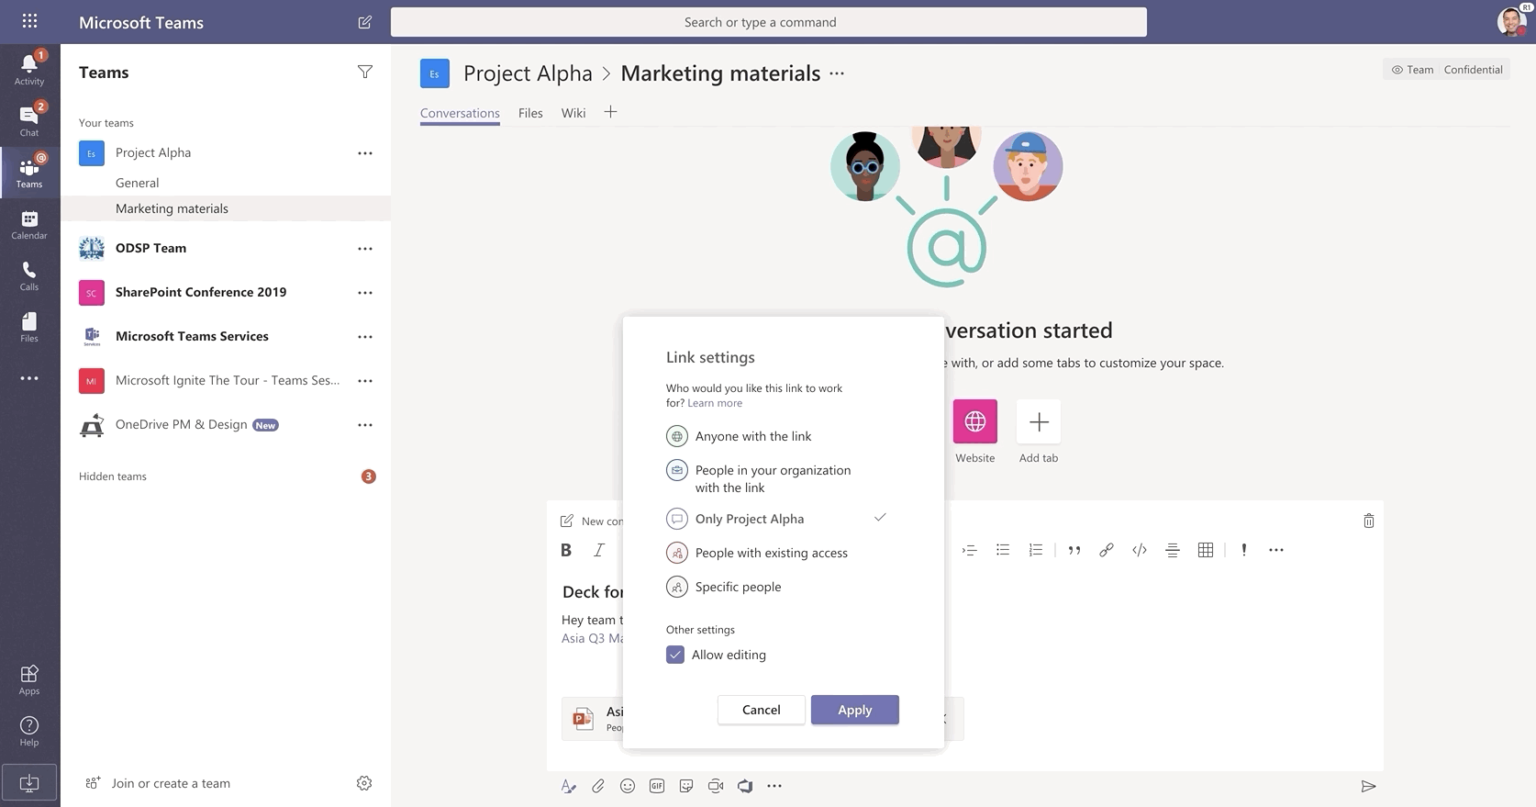 Image of a conversation in Microsoft Teams.